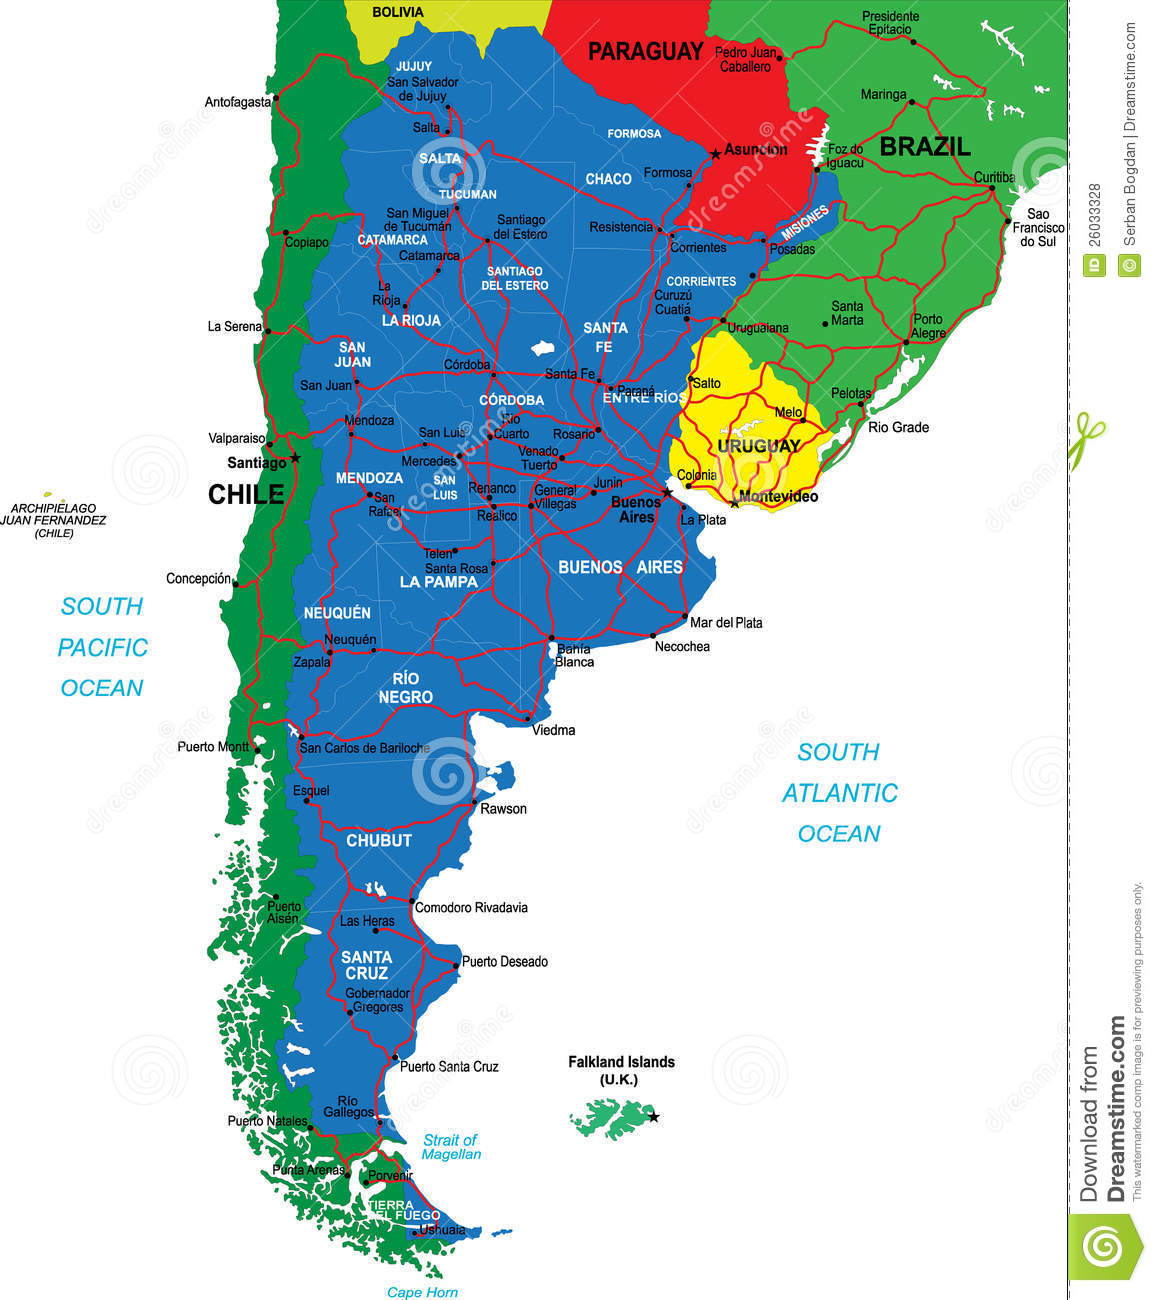 Argentina Map Royalty Free Stock Photos Image - Argentina map download